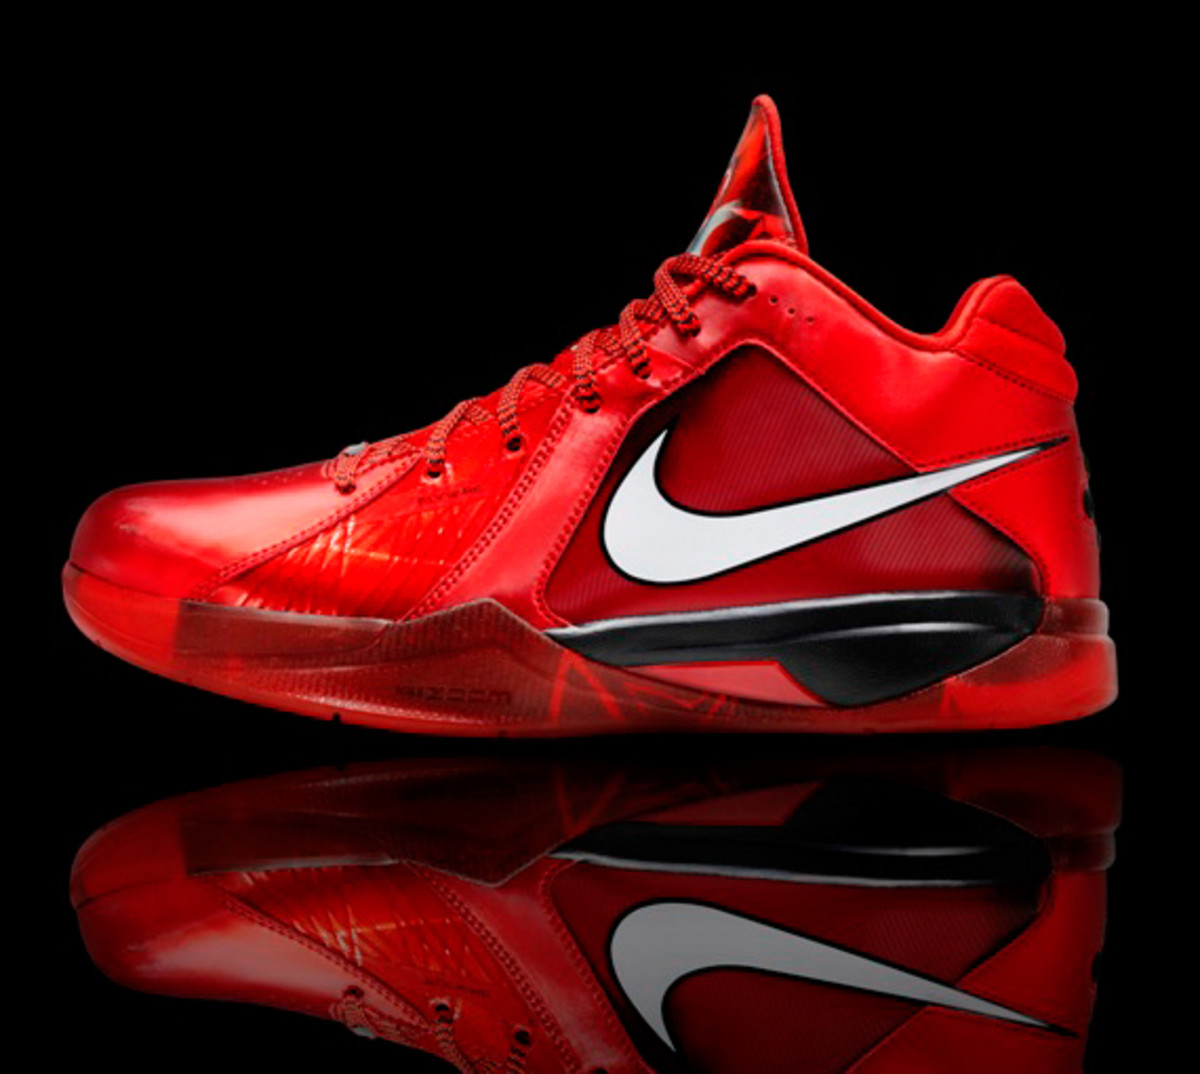 kevin-durant-nike-all-star-zoom-kd-iii-01